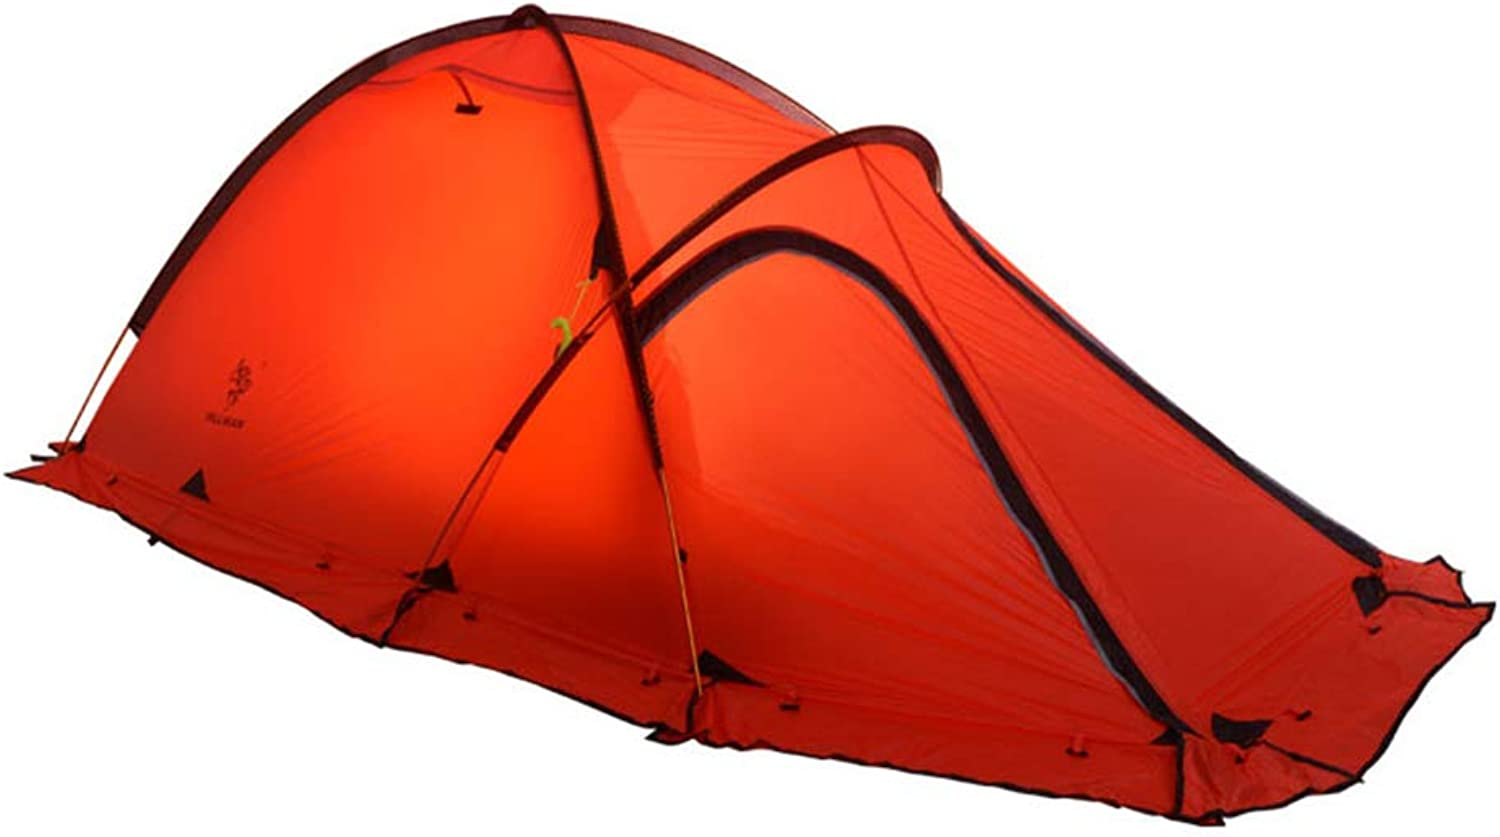 Camping Tent, UltraLight Coated Silicon AntiStorm Rain Waterproof Outdoor Sports Camping Awning